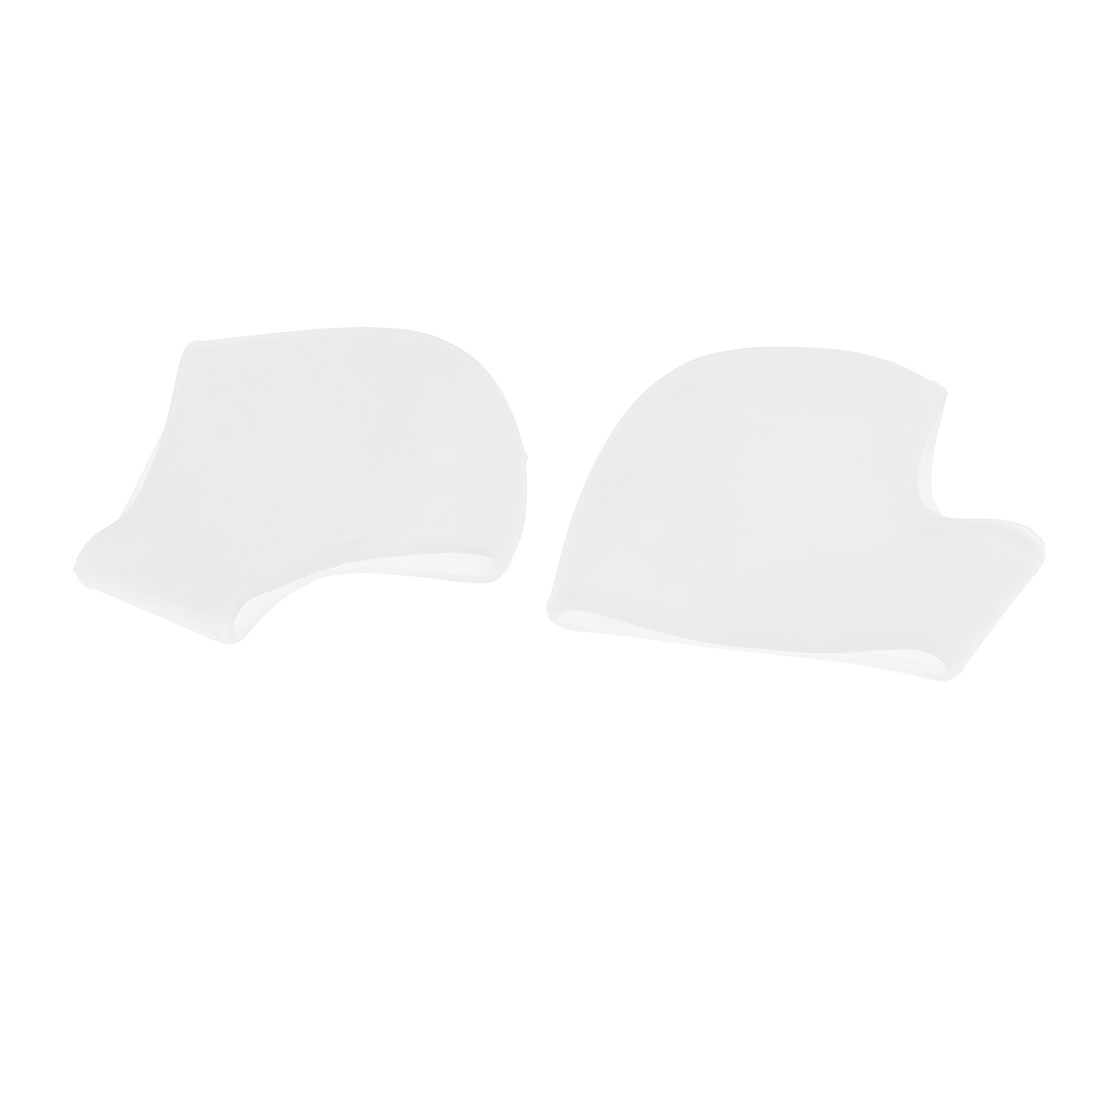 2 Pcs Unisex White Silicone Gel Heel Pain Ease Relief Foot Care Protector